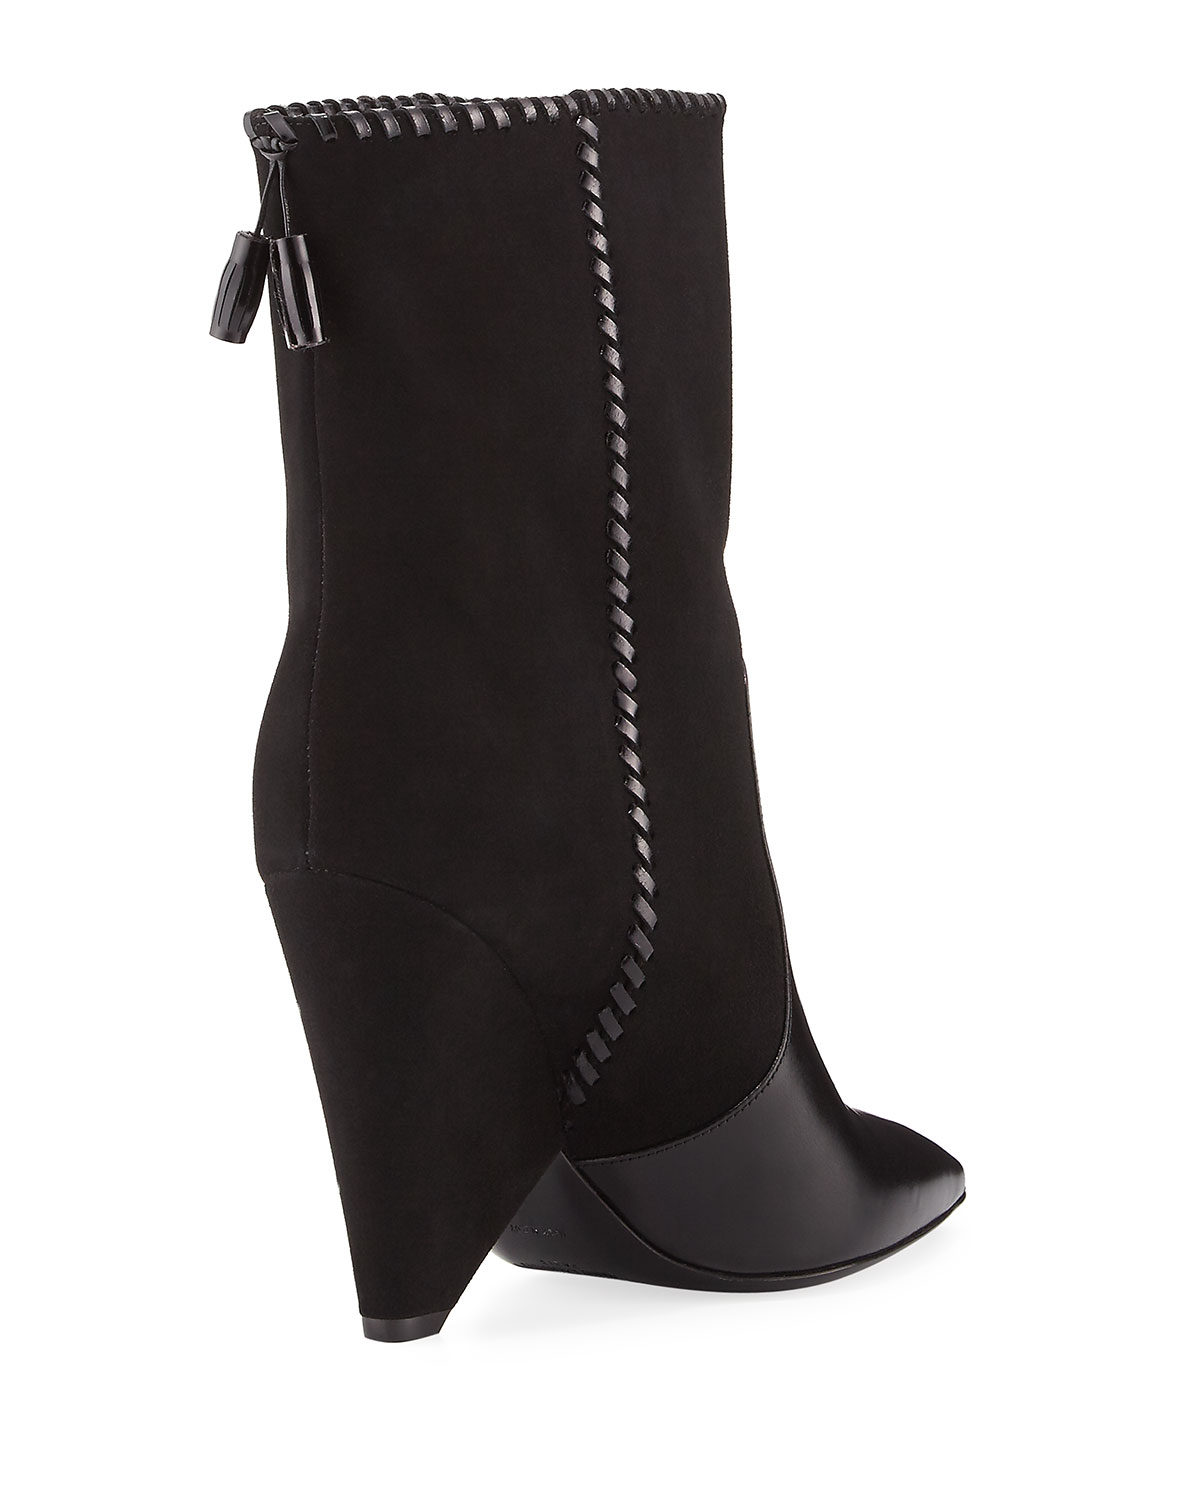 Saint Laurent Niki Mixed Leather Mid-Calf Boot, Black